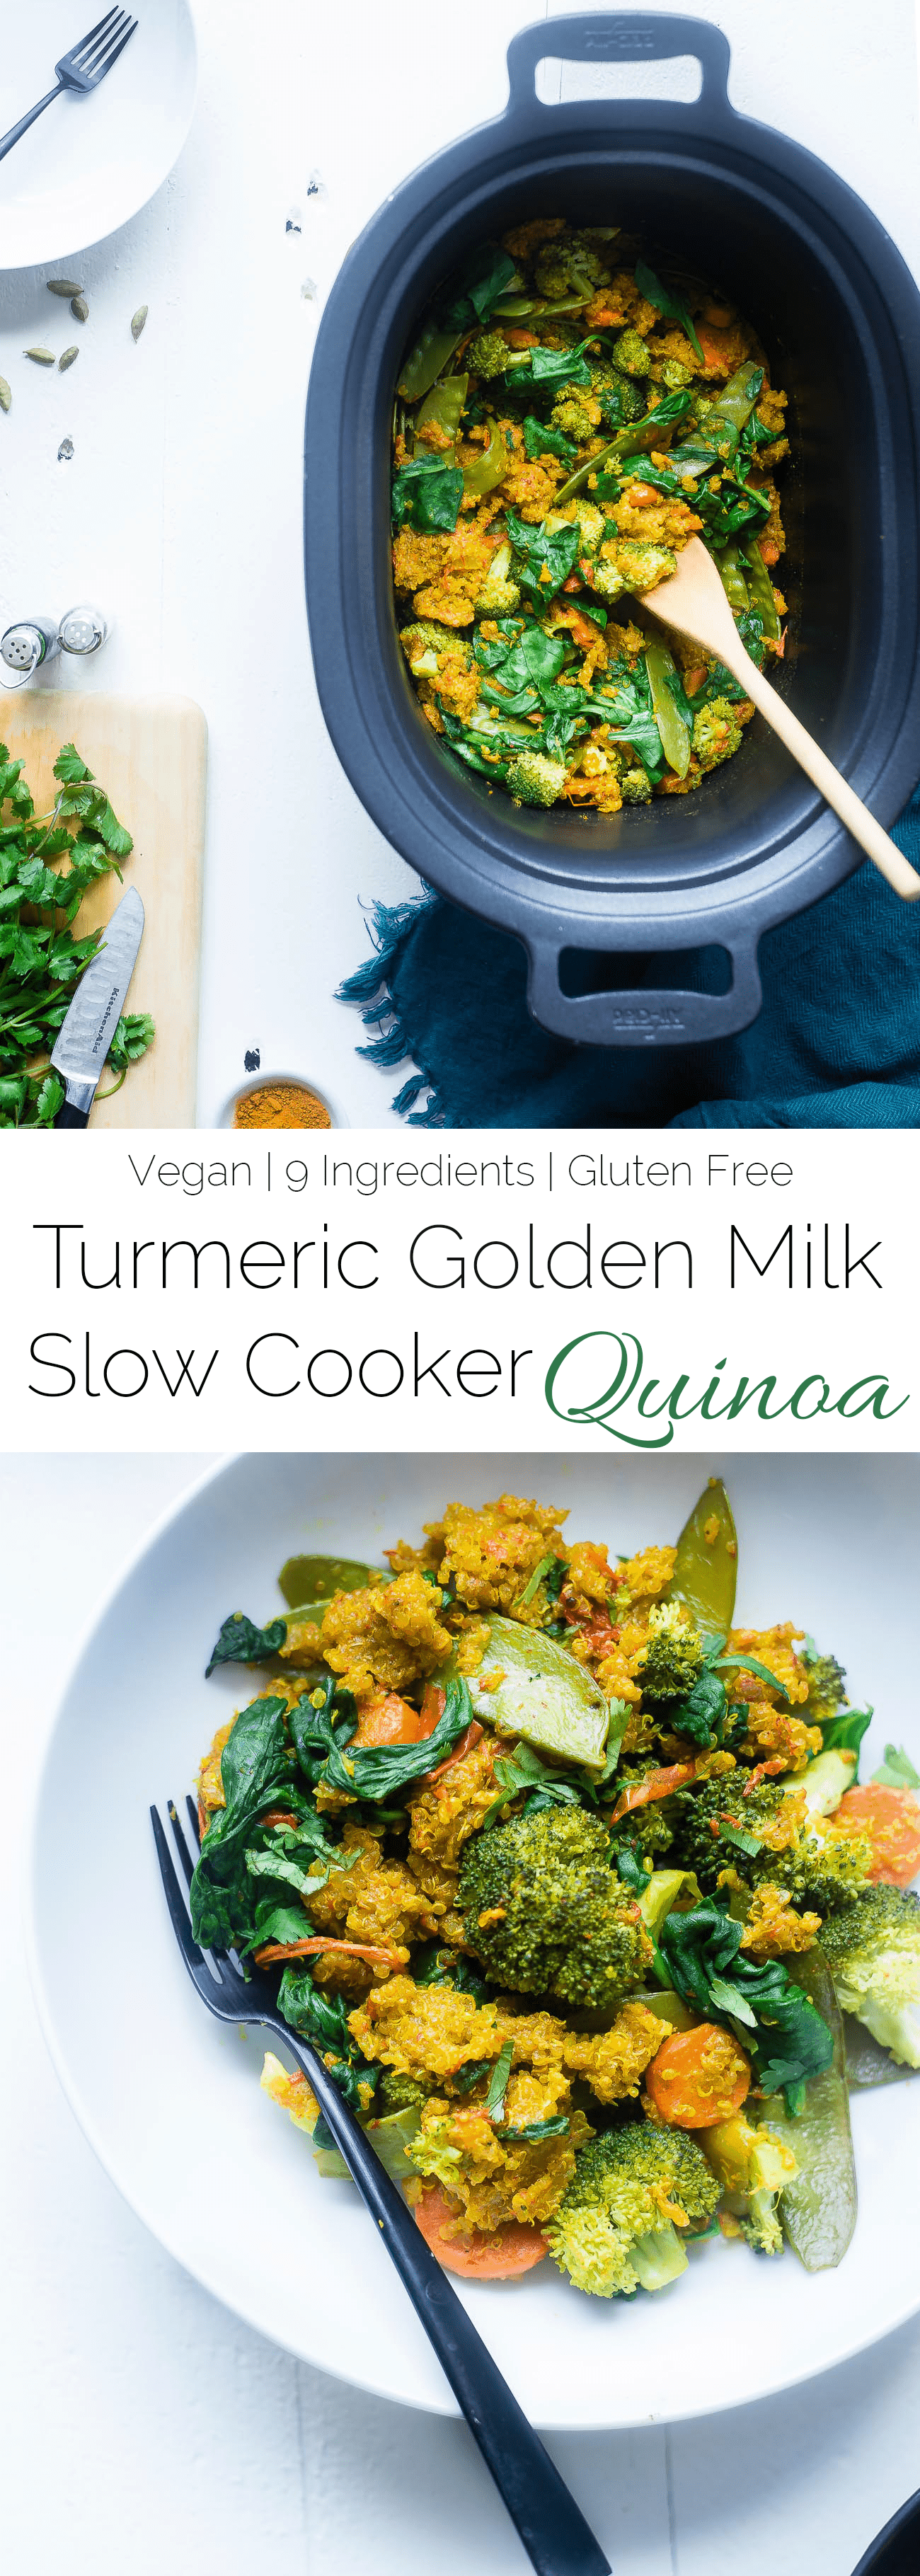 Vegan Turmeric Golden Milk Slow Cooker Quinoa - This healthy slow cooker quinoa with golden milk recipe is an easy, 10 ingredient vegan dinner that is loaded with vegetables! Perfect for busy weeknights!| Foodfaithfitness.com | @FoodFaithFit